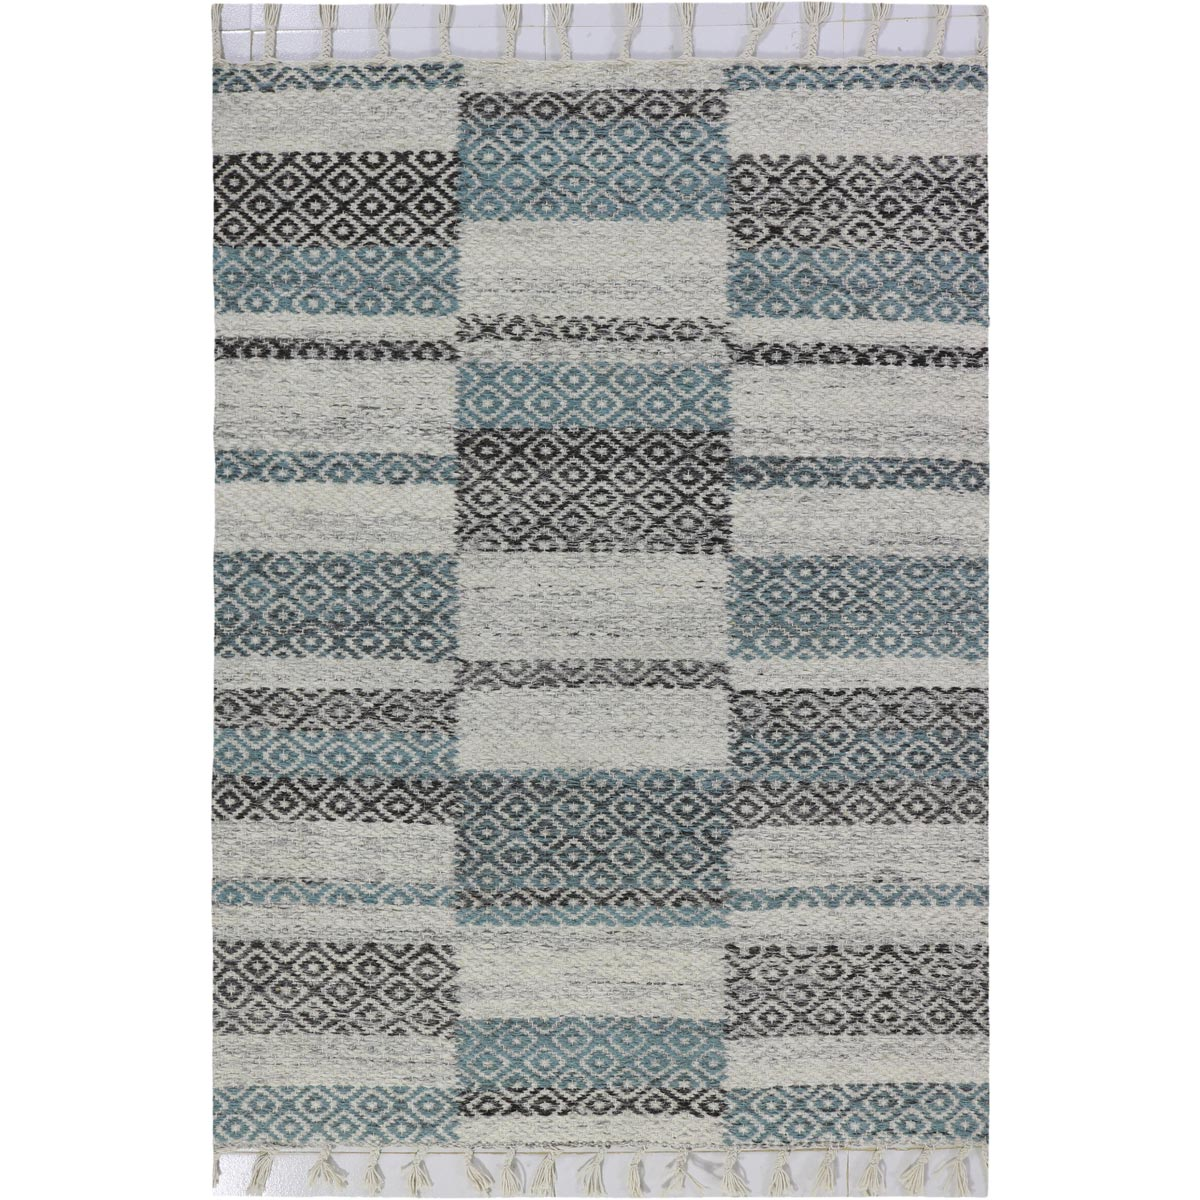 Tangier Rug 10 Grey/Blue 1